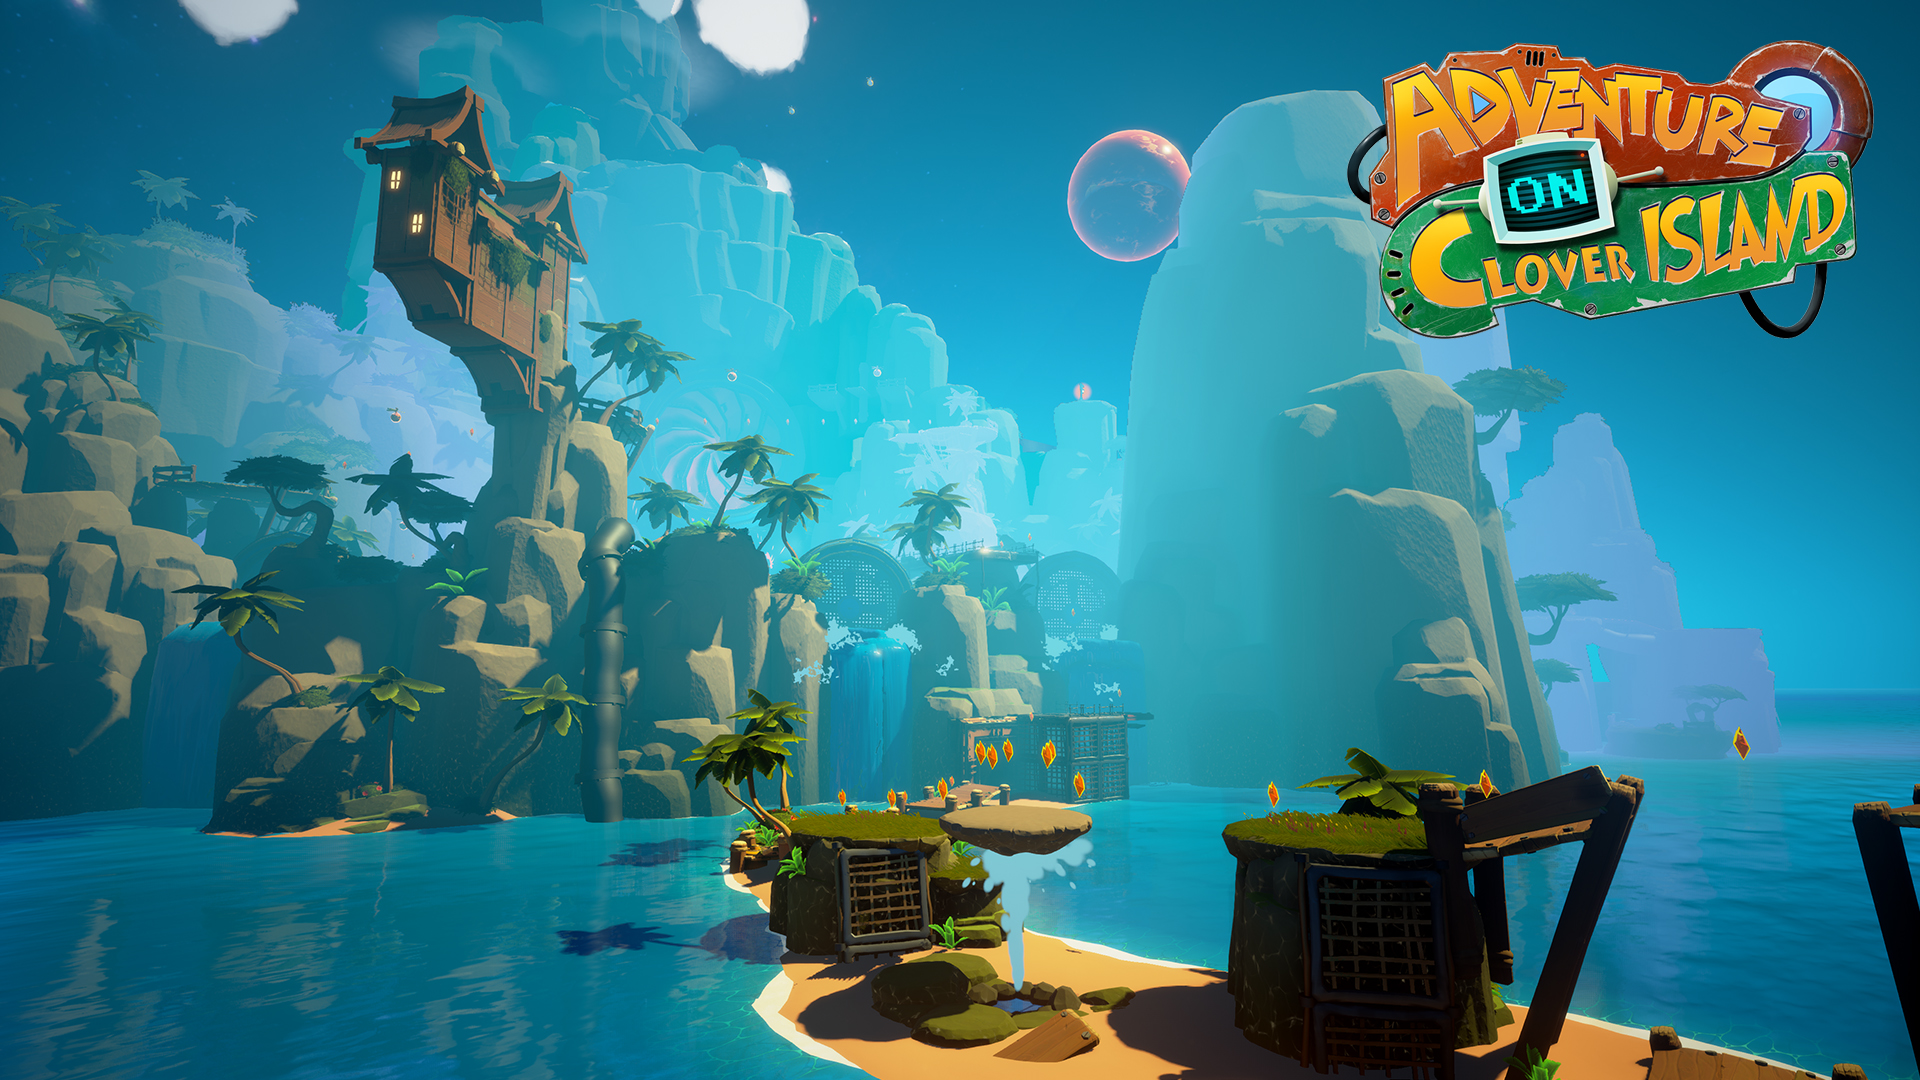 The game looks really pretty, reminding me of Ratchet & Clank a lot